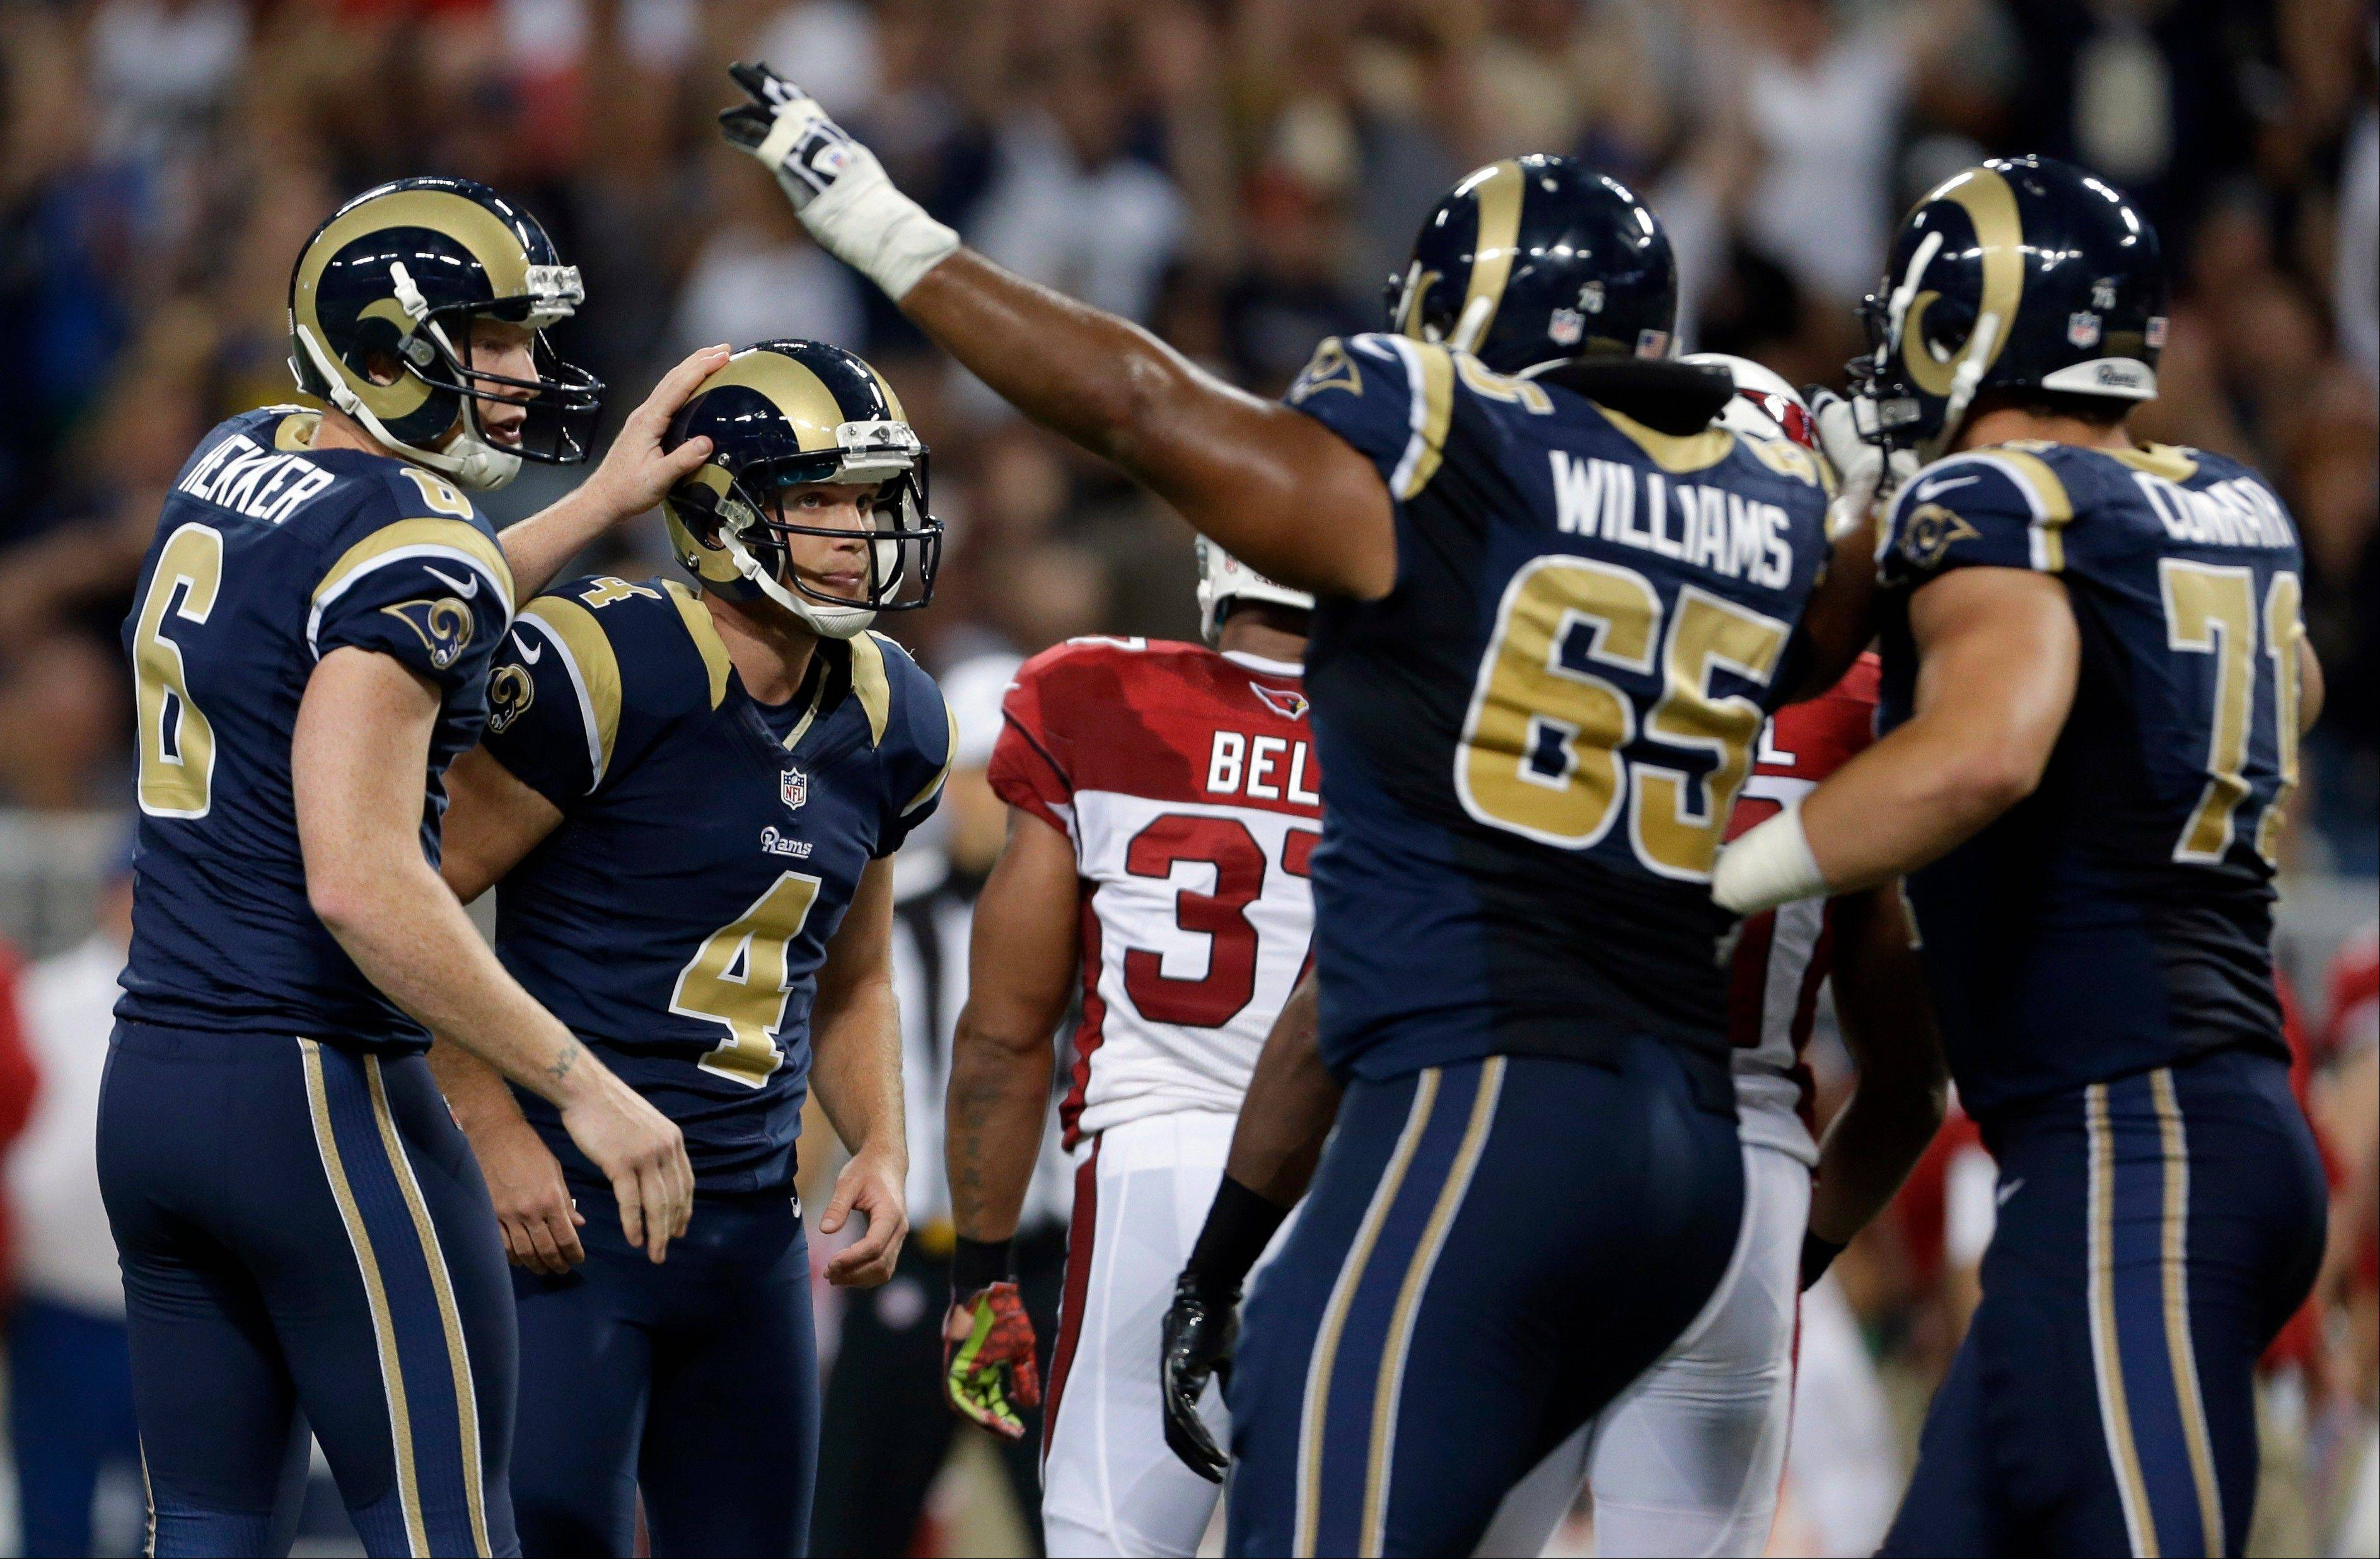 St. Louis Rams placekicker Greg Zuerlein (4) is congratulated by teammates Johnny Hekker, left, Chris Williams (65) and Matt Conrath, right, after booting a 48-yard field goal late in the fourth quarter of an NFL football game against the Arizona Cardinals, Sunday, Sept. 8, 2013, in St. Louis. The Rams won 27-24.